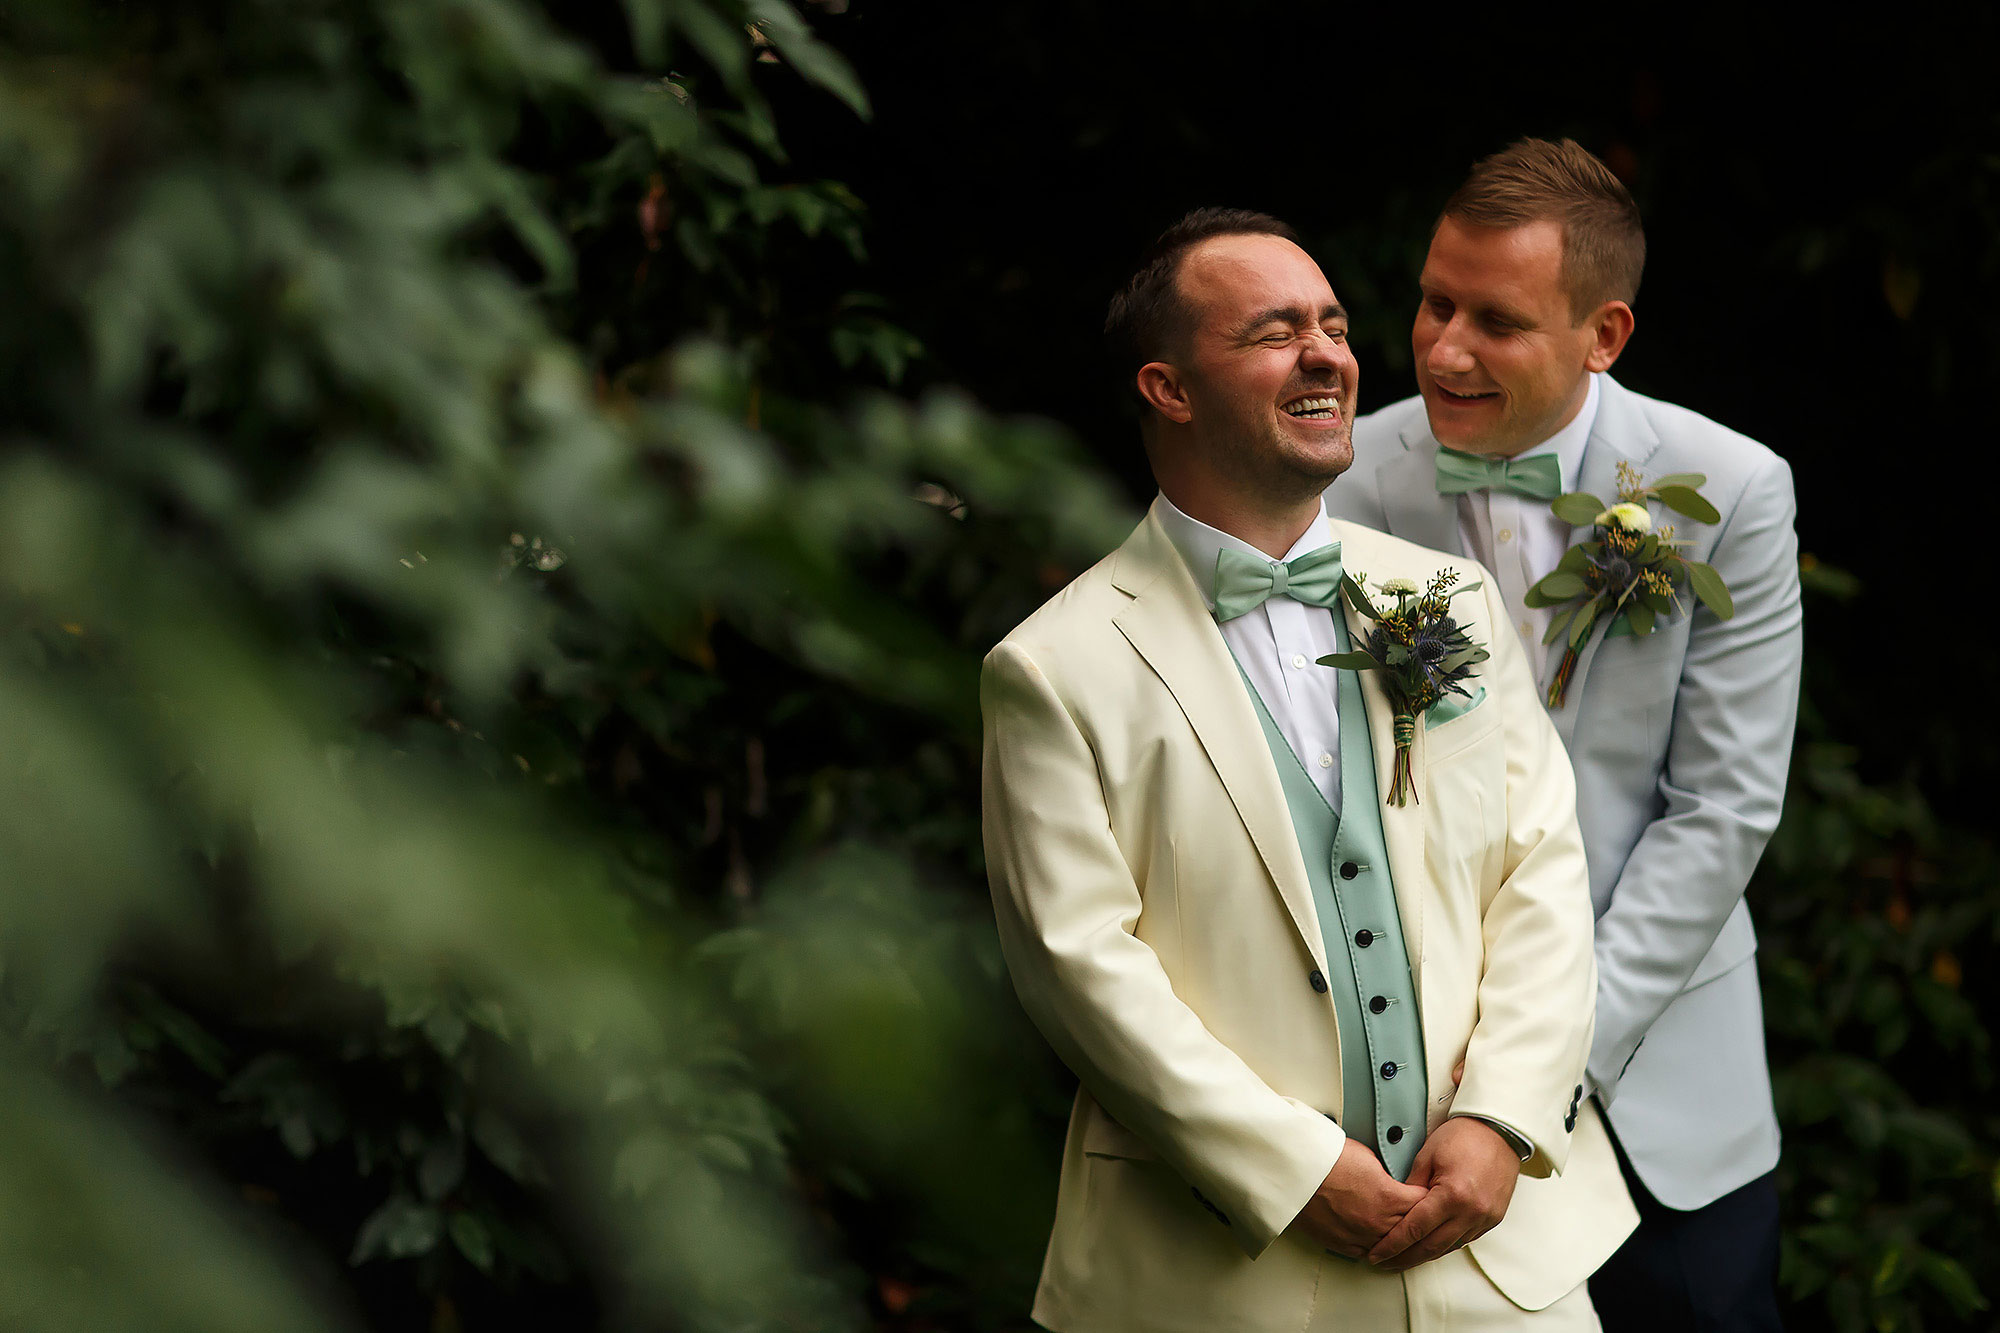 Two groom on a wedding day